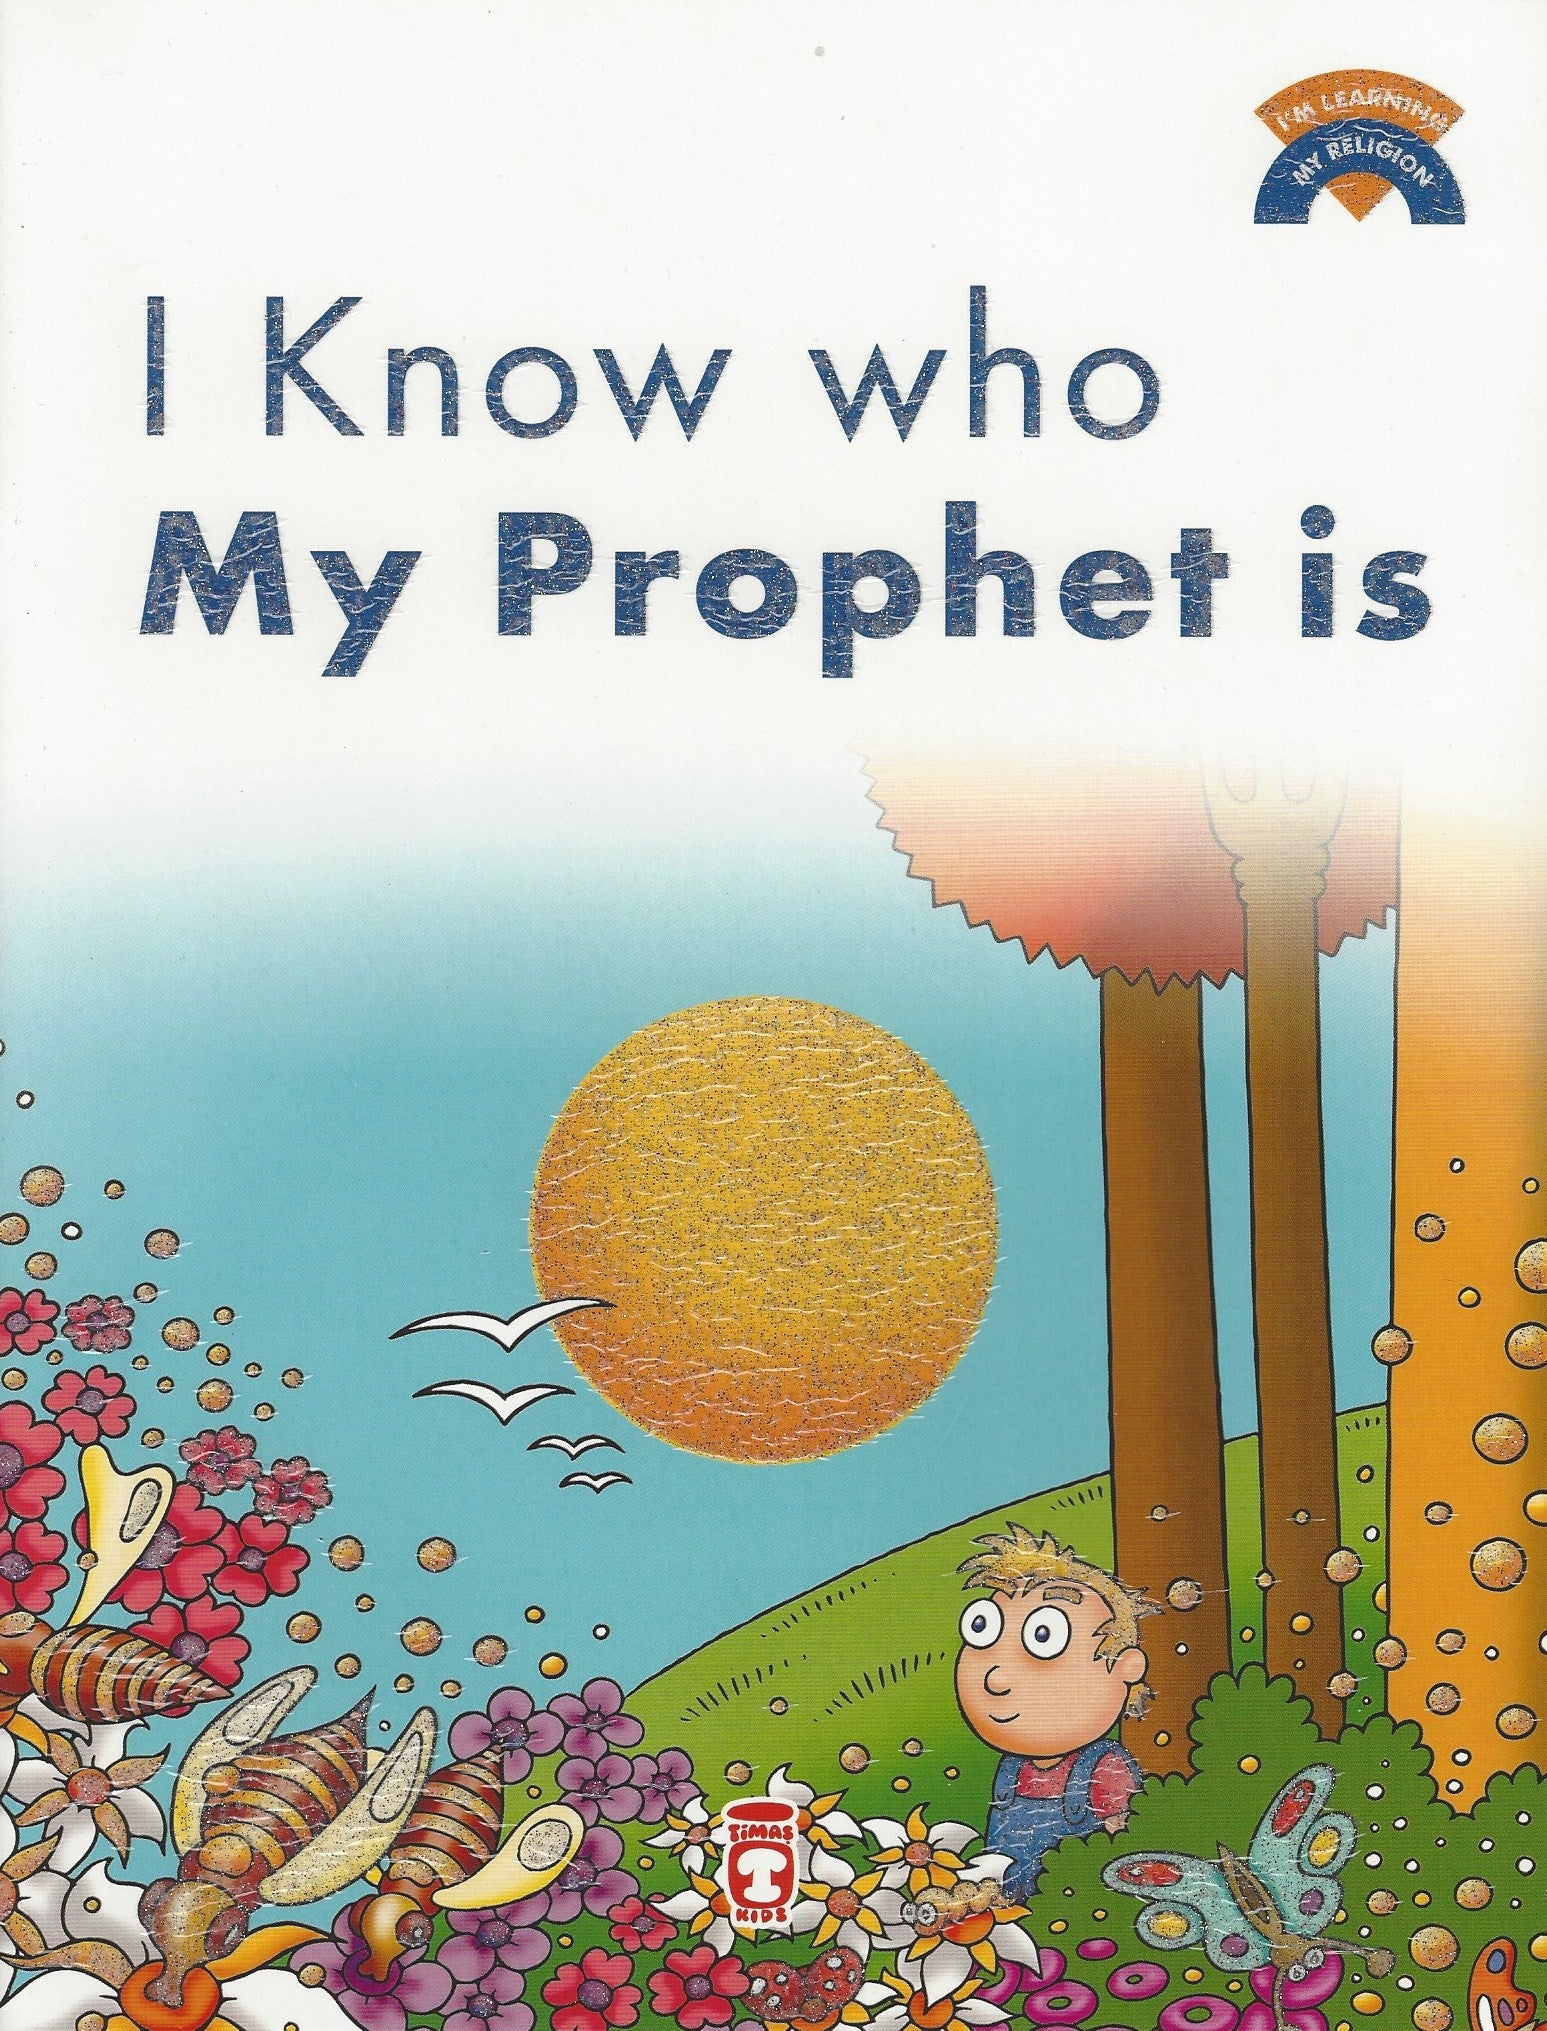 I'm Learning My Religion (10 volume set) I Know Who My Prophet Is, Book - Daybreak International Bookstore, Daybreak Press Global Bookshop  - 8